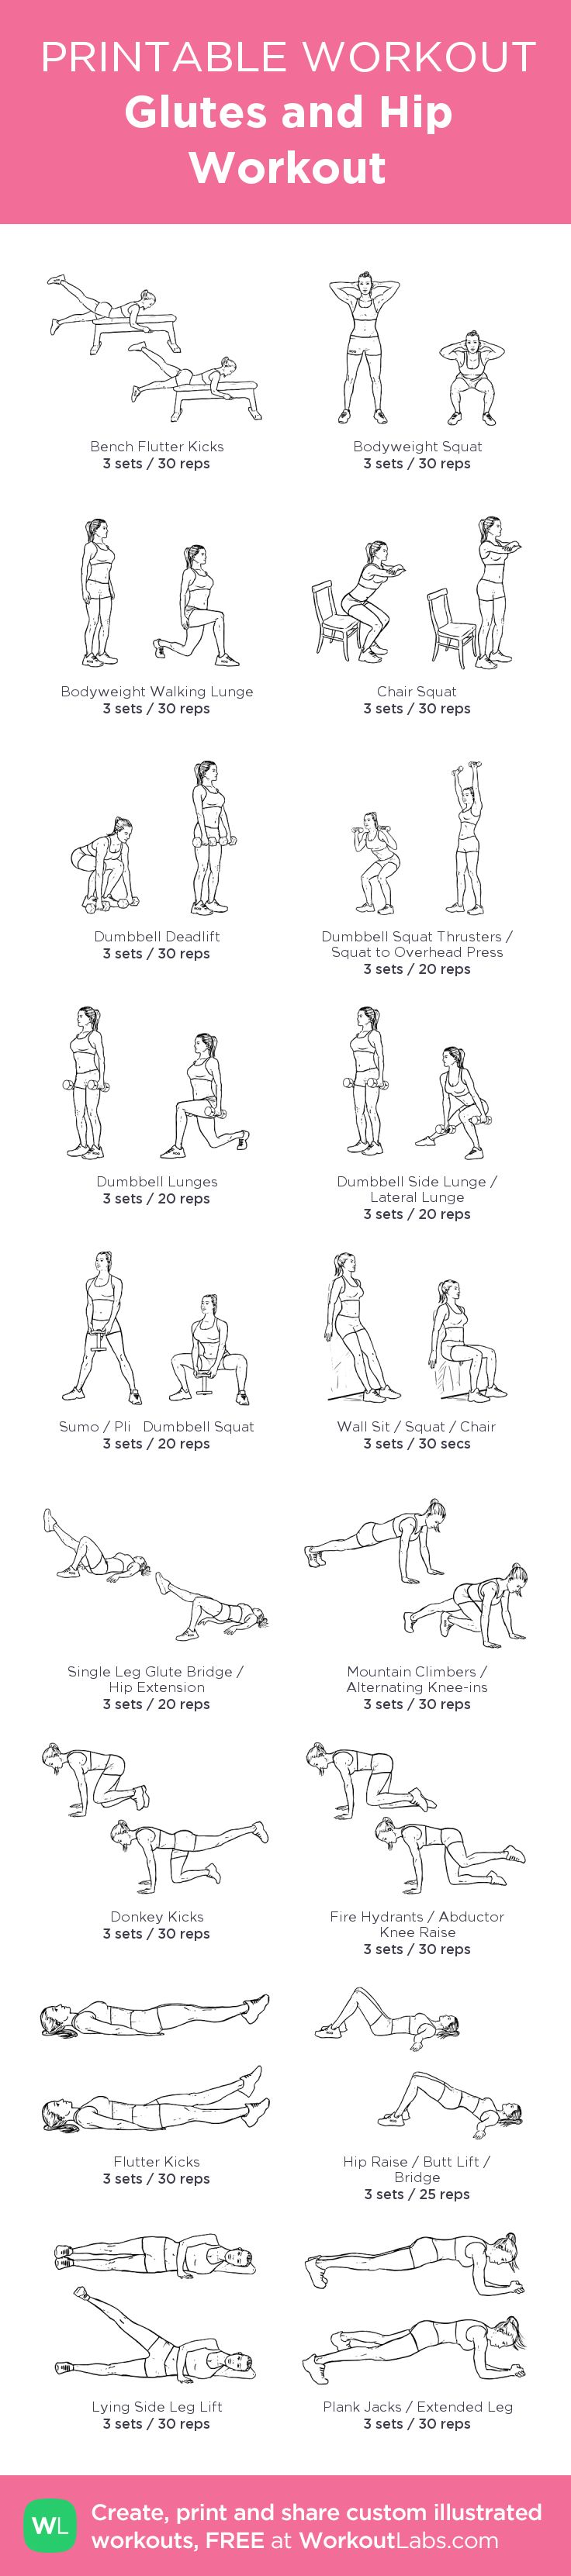 Glutes and Hip Workout: my visual workout created at WorkoutLabs.com • Click t…